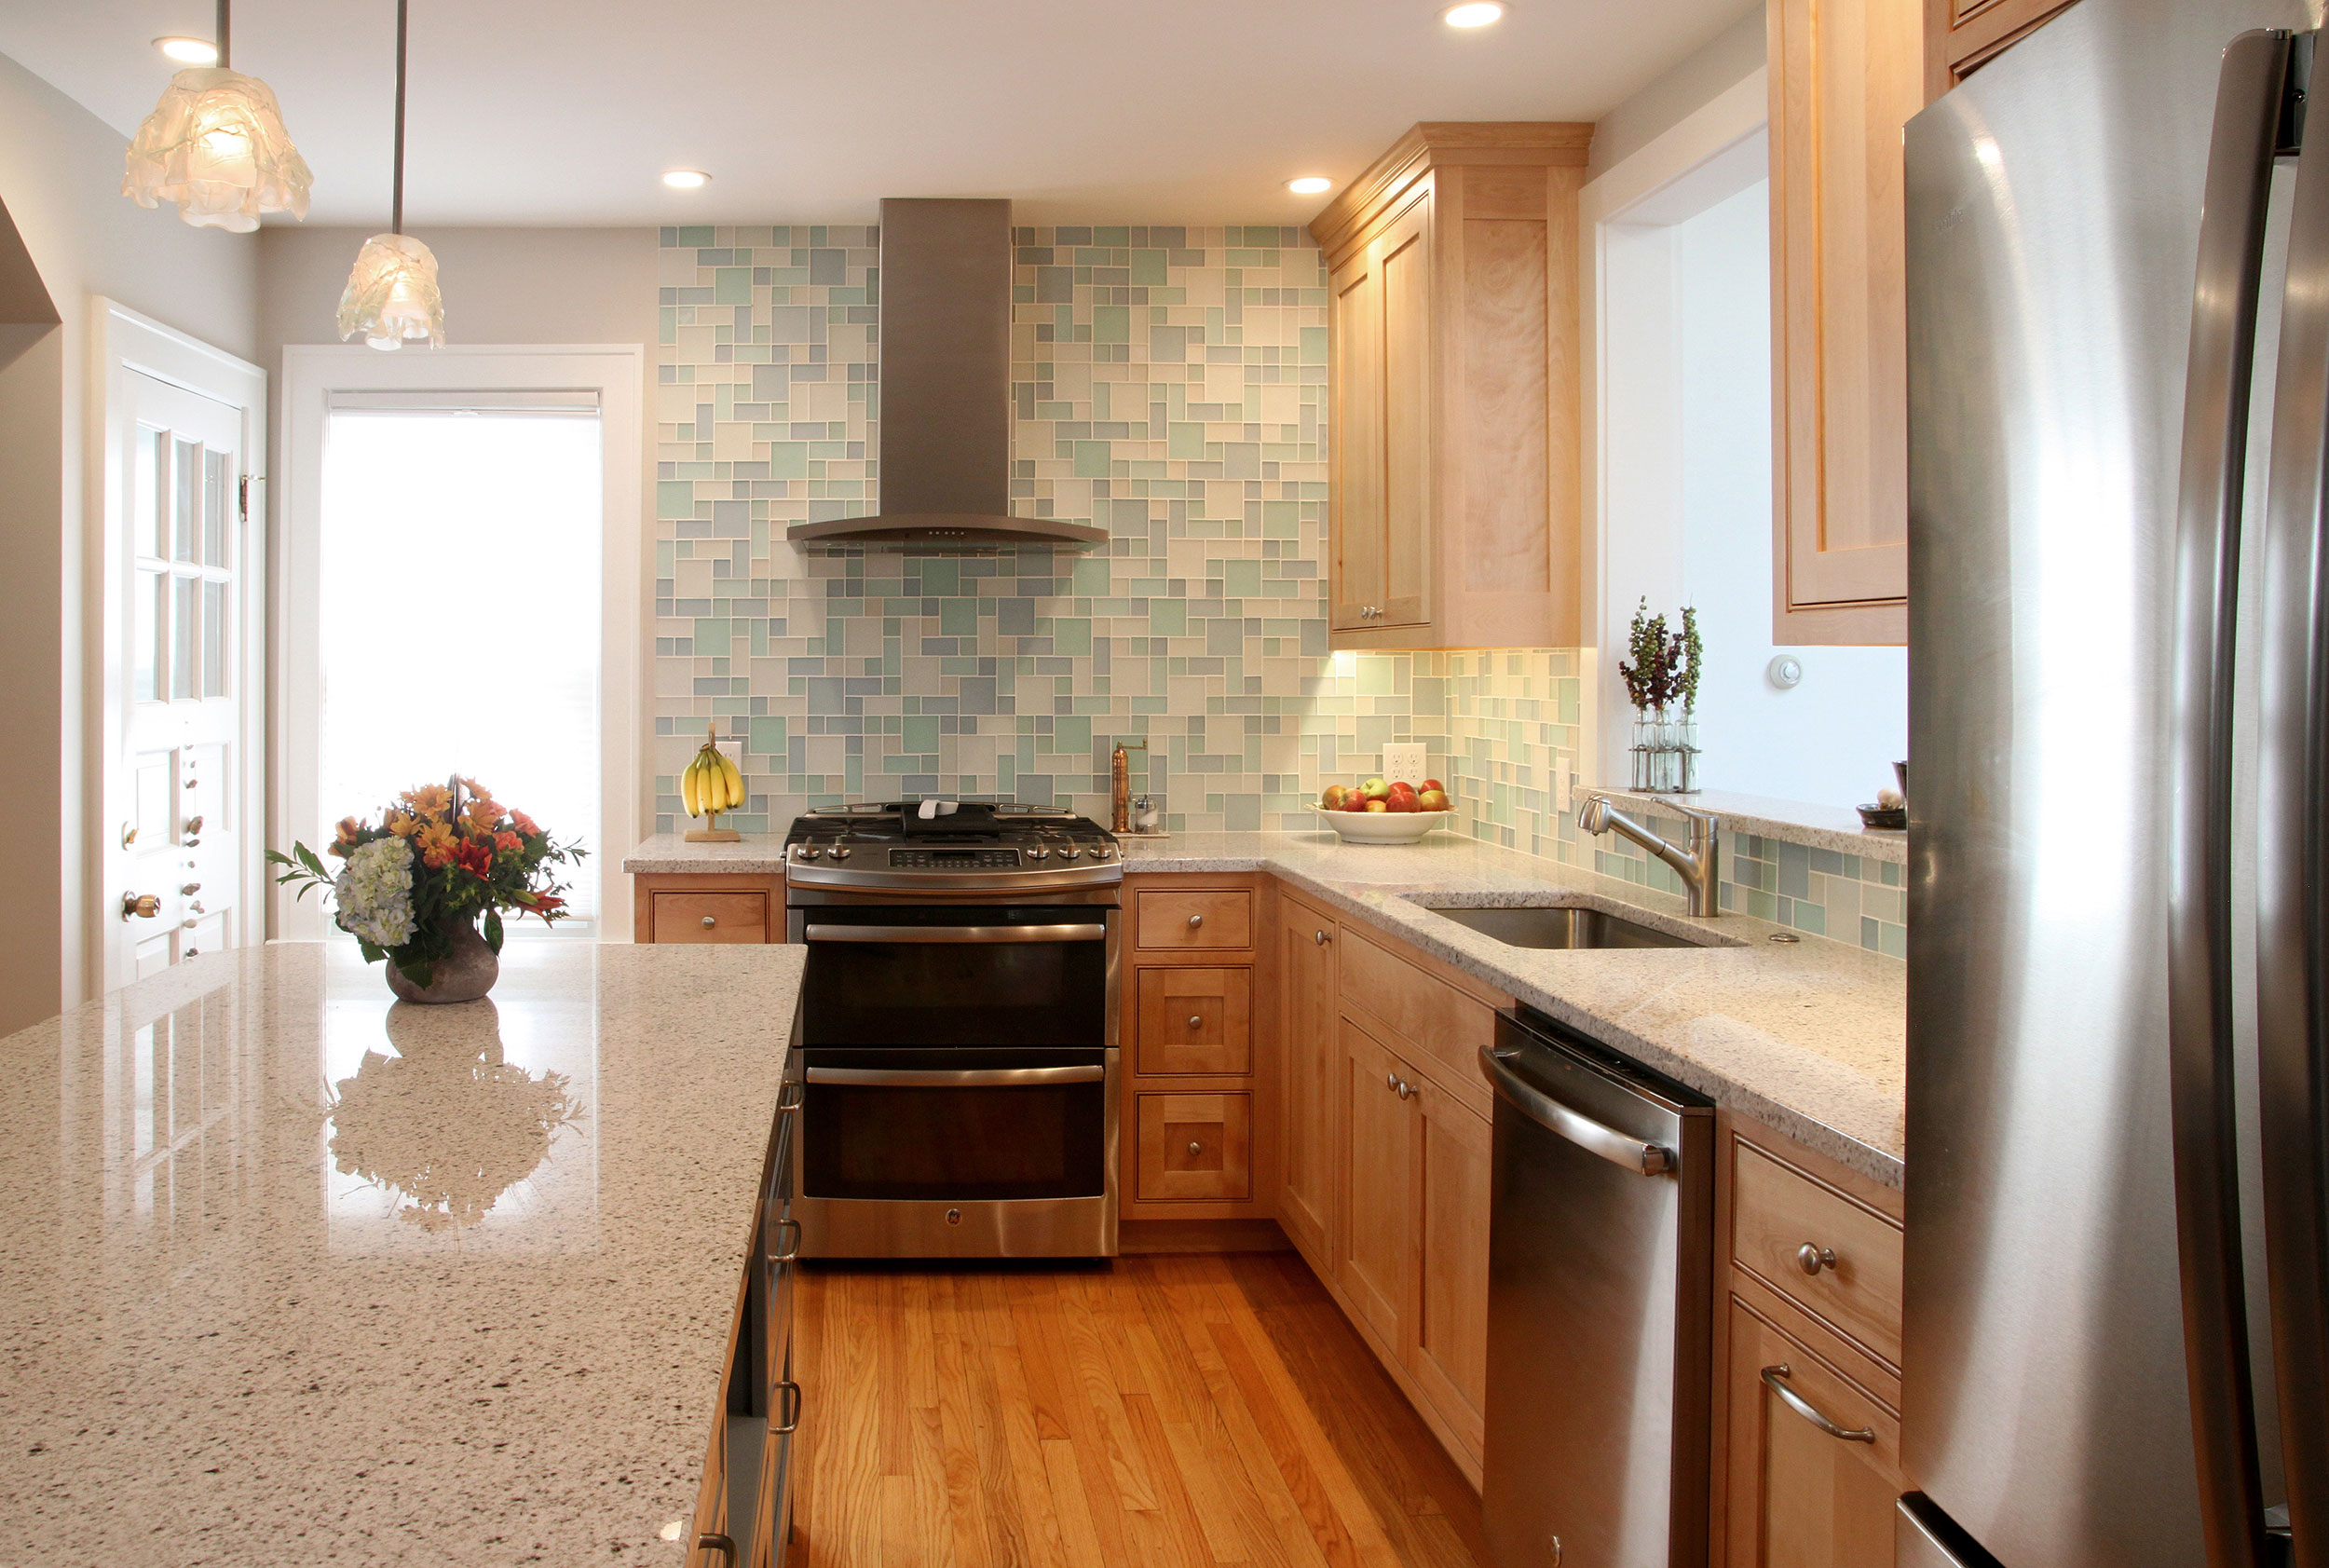 Light airy kitchen maximizes small space